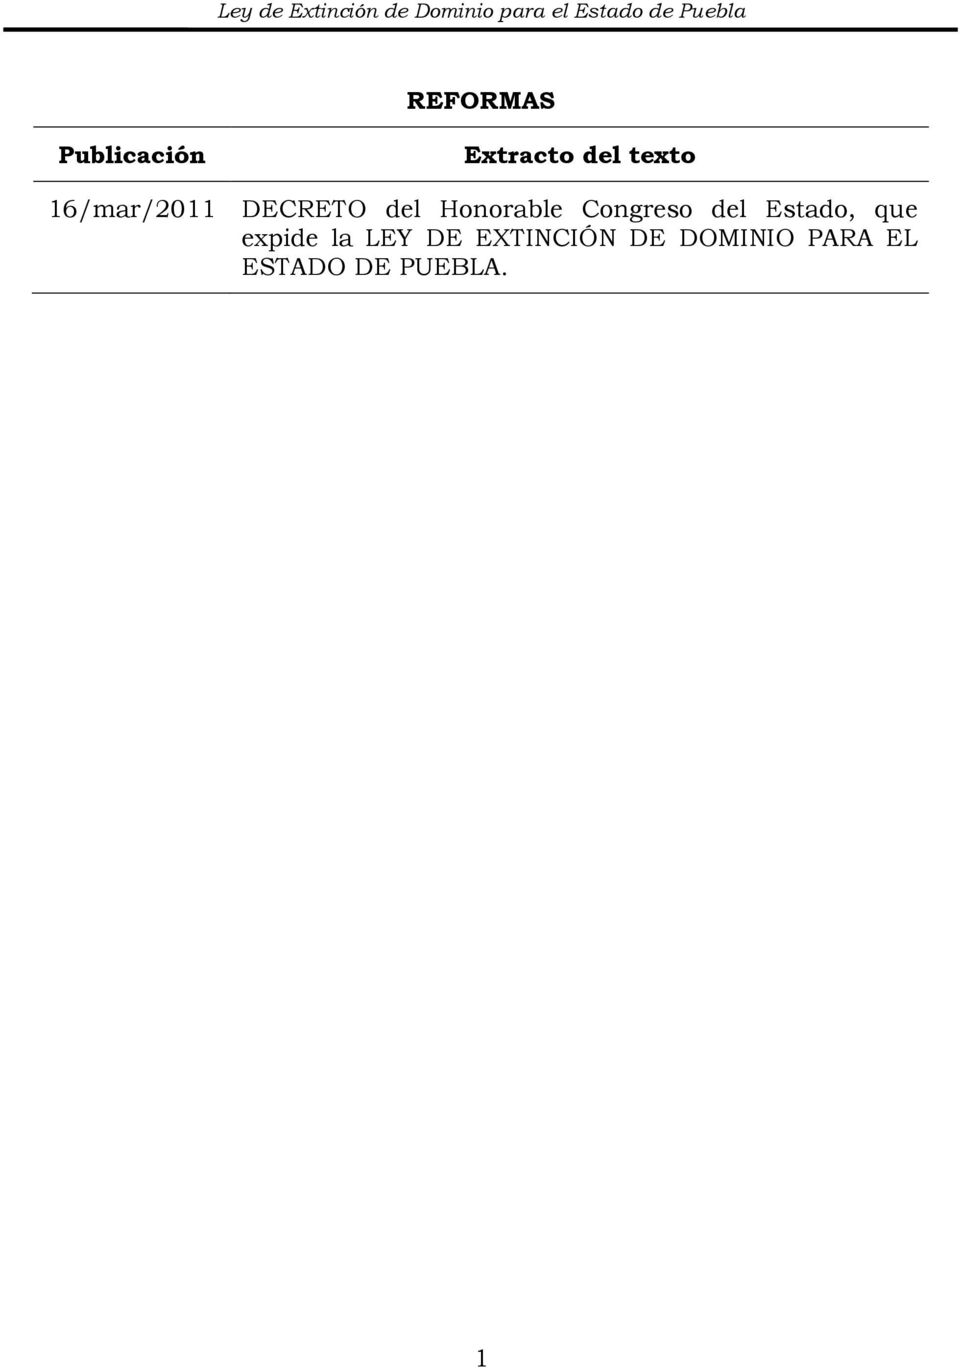 DECRETO del Honorable Congreso del Estado, que expide